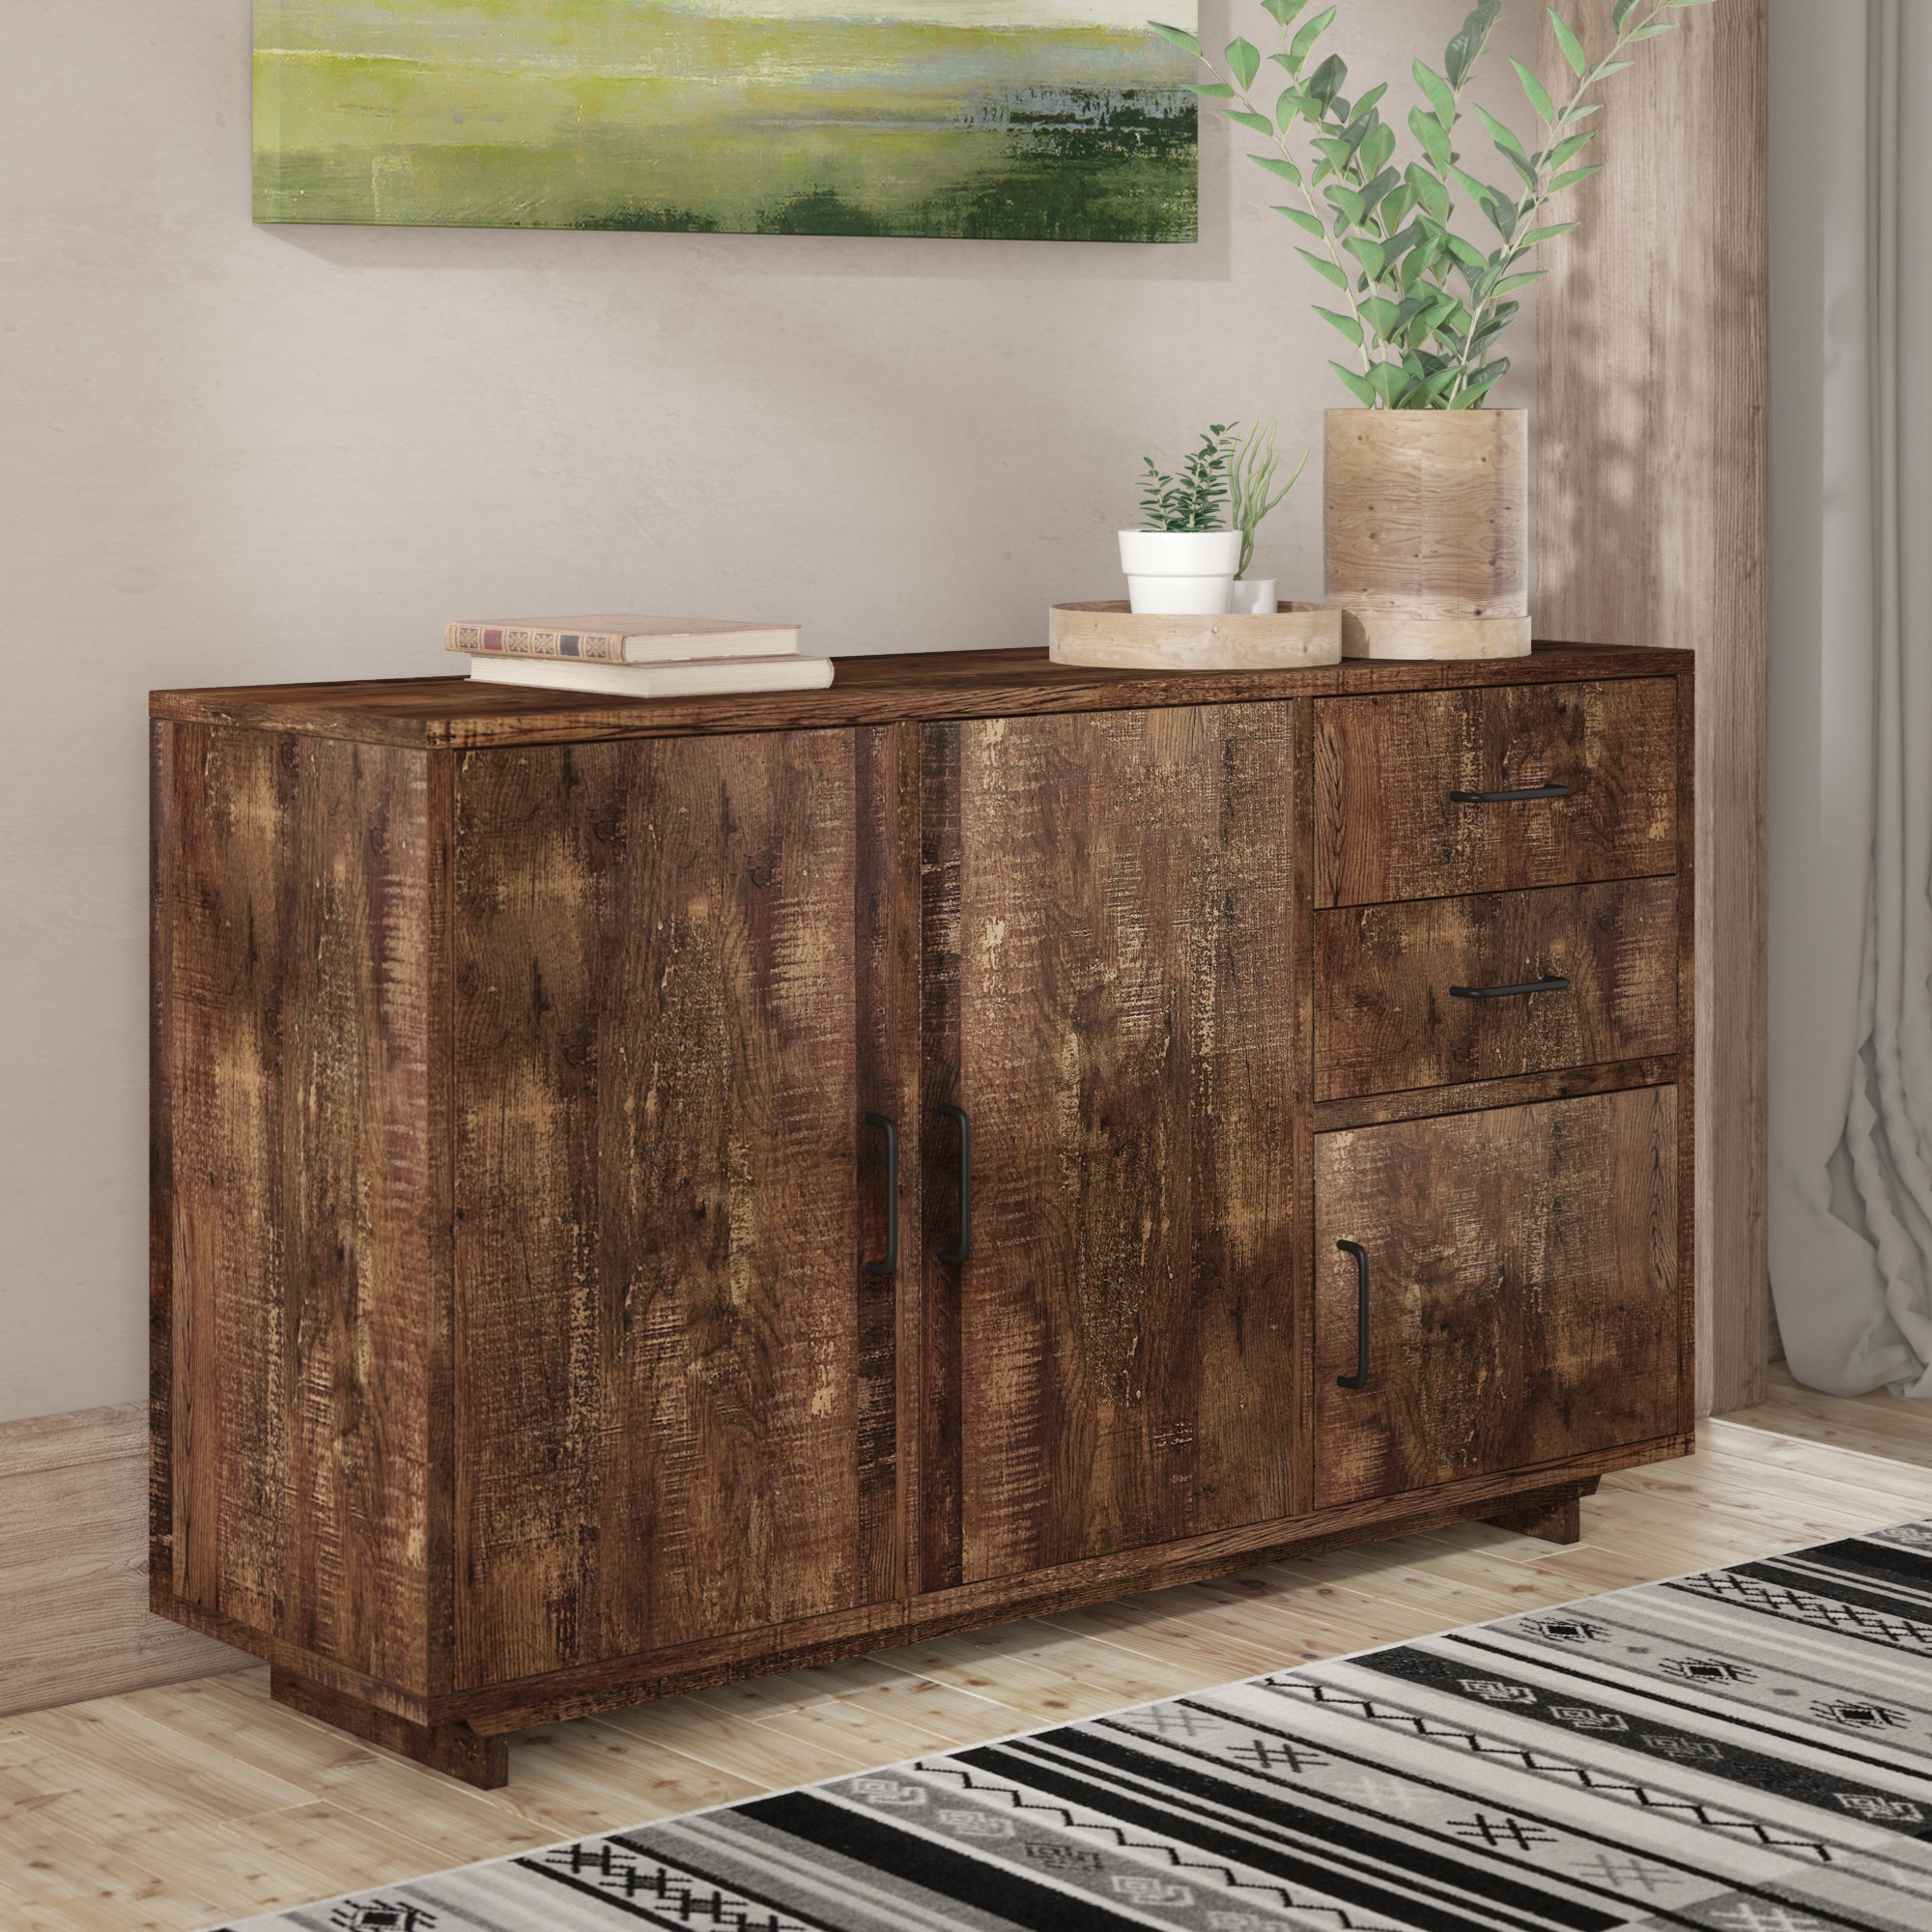 Narrow Dining Room Sideboards | Wayfair With Regard To Most Current Pineville Dining Sideboards (View 14 of 20)